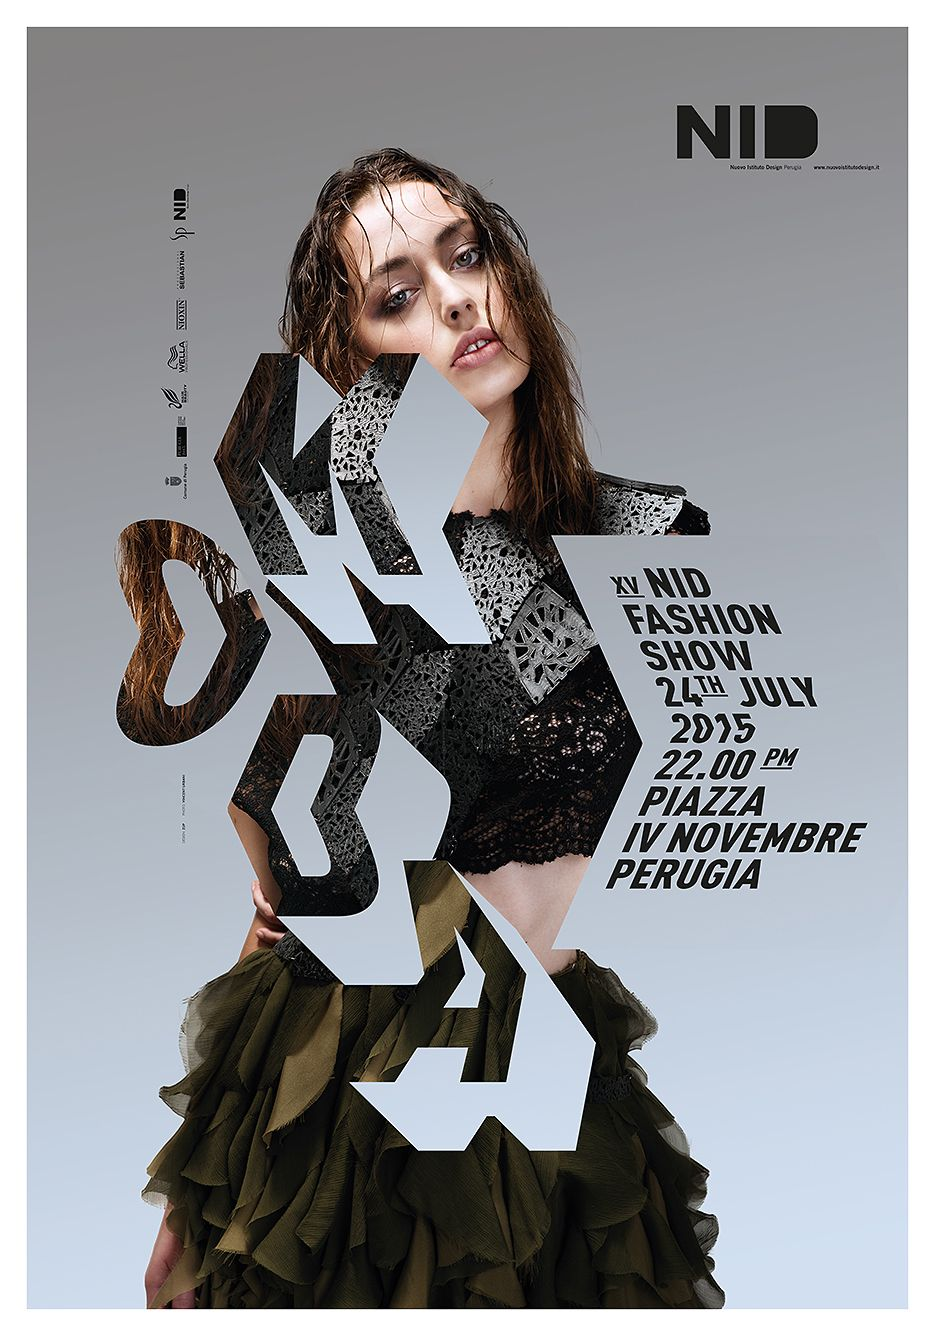 78 images about Fashion Poster – Fashion Poster Design